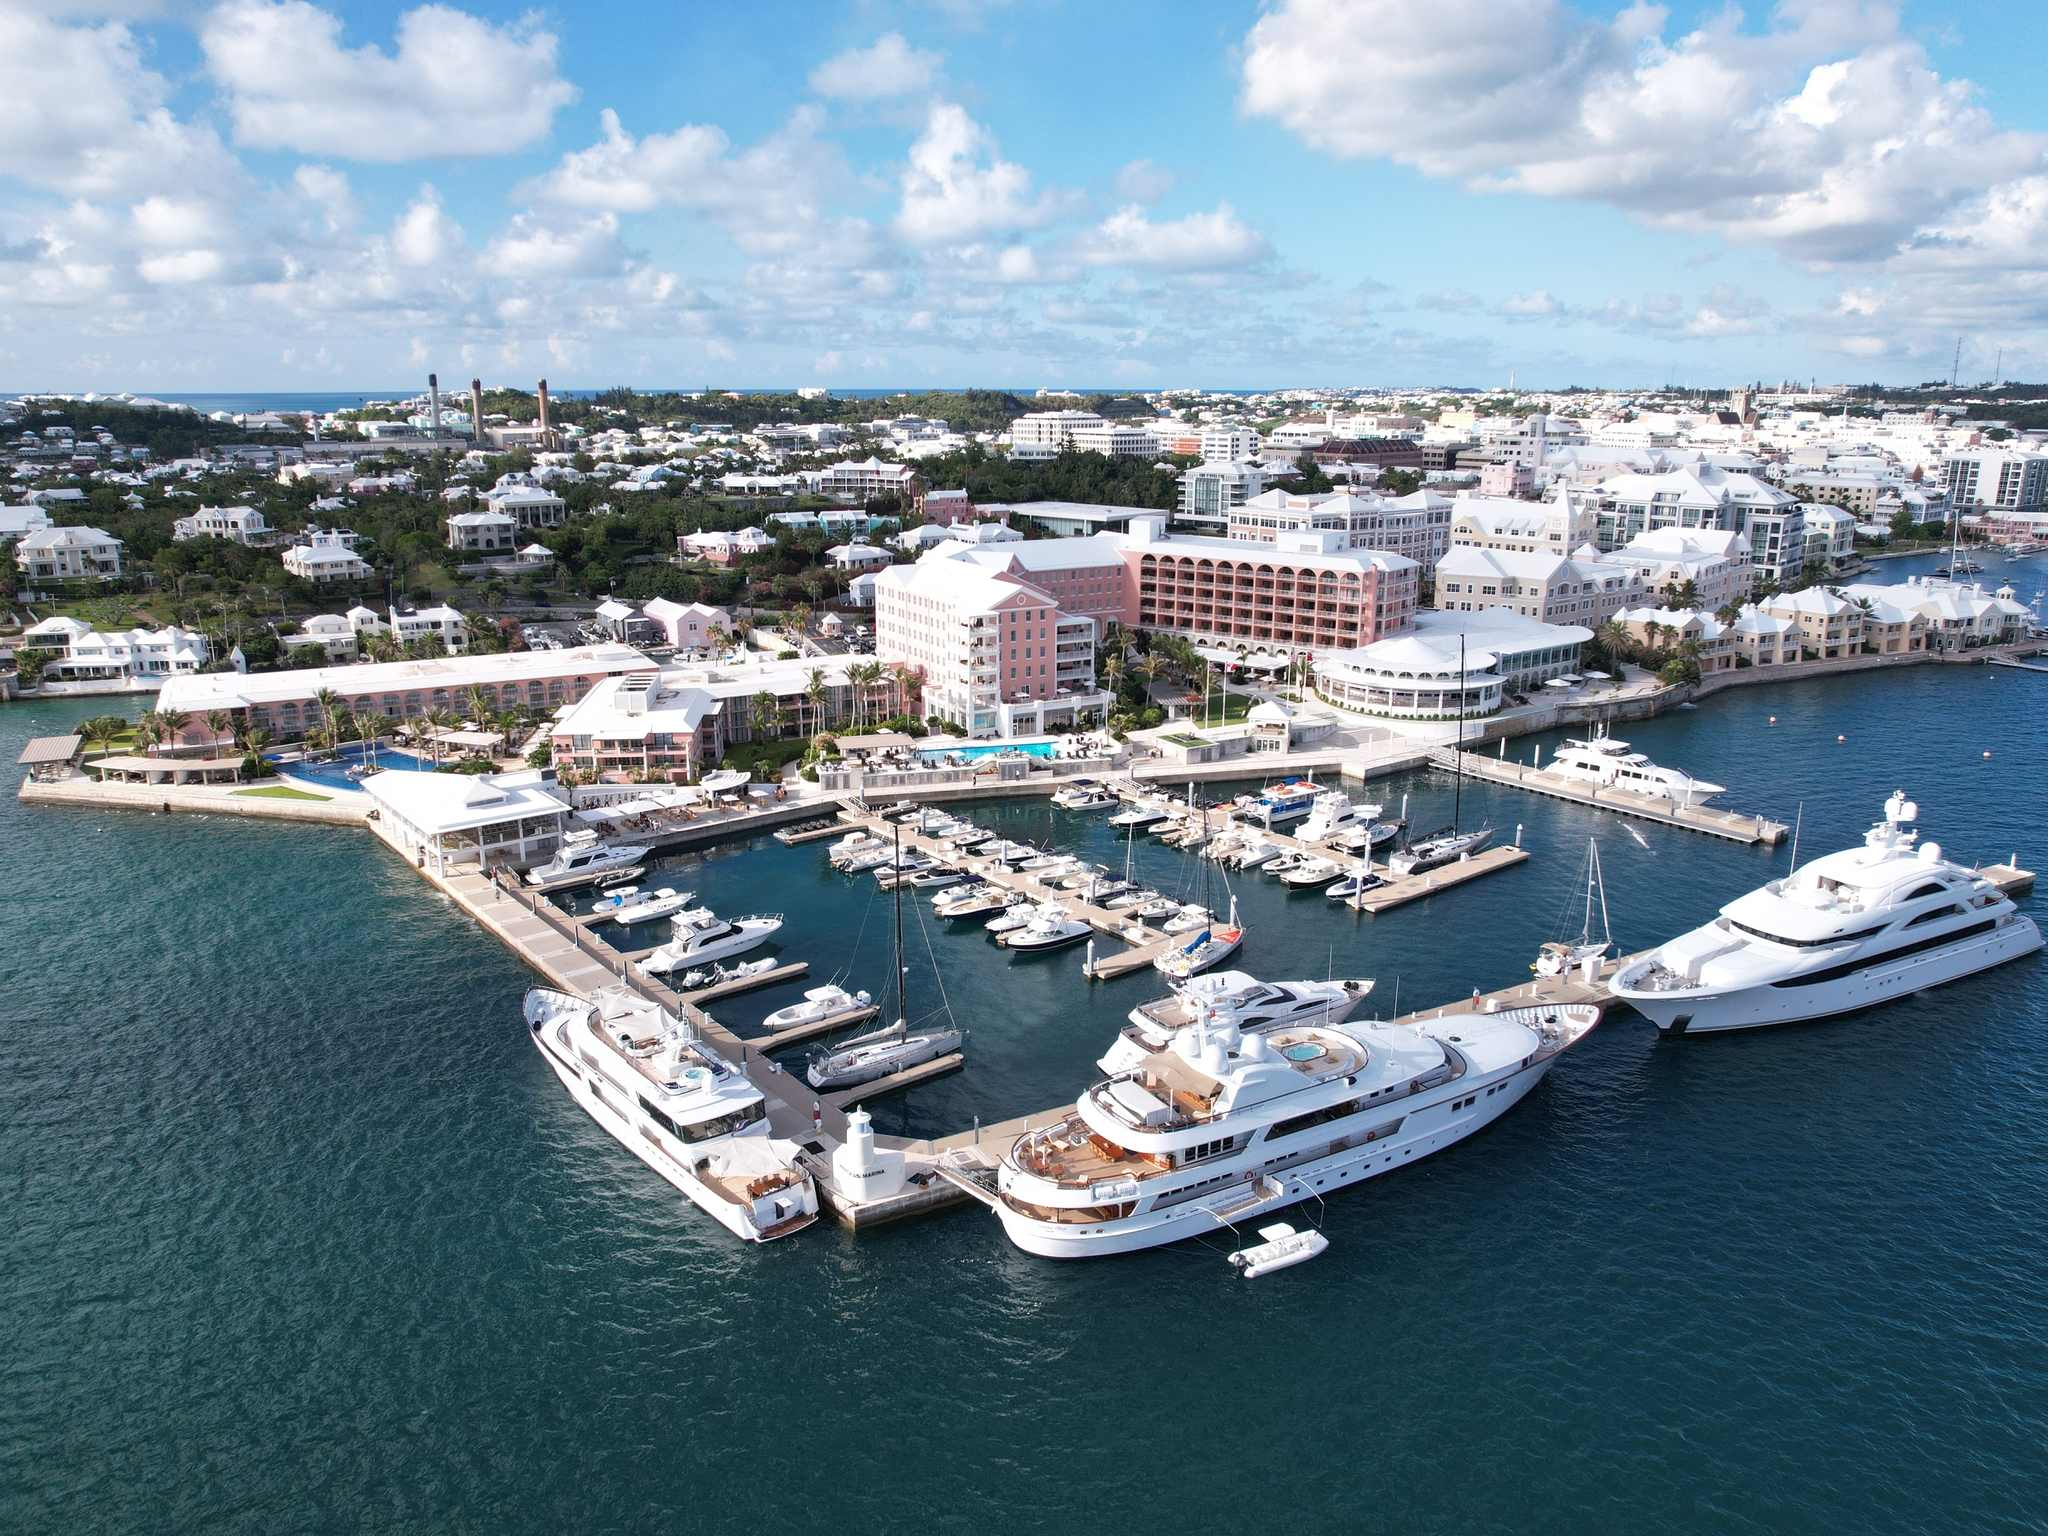 Hotel – Hamilton Princess & Beach Club - A Fairmont Managed Hotel